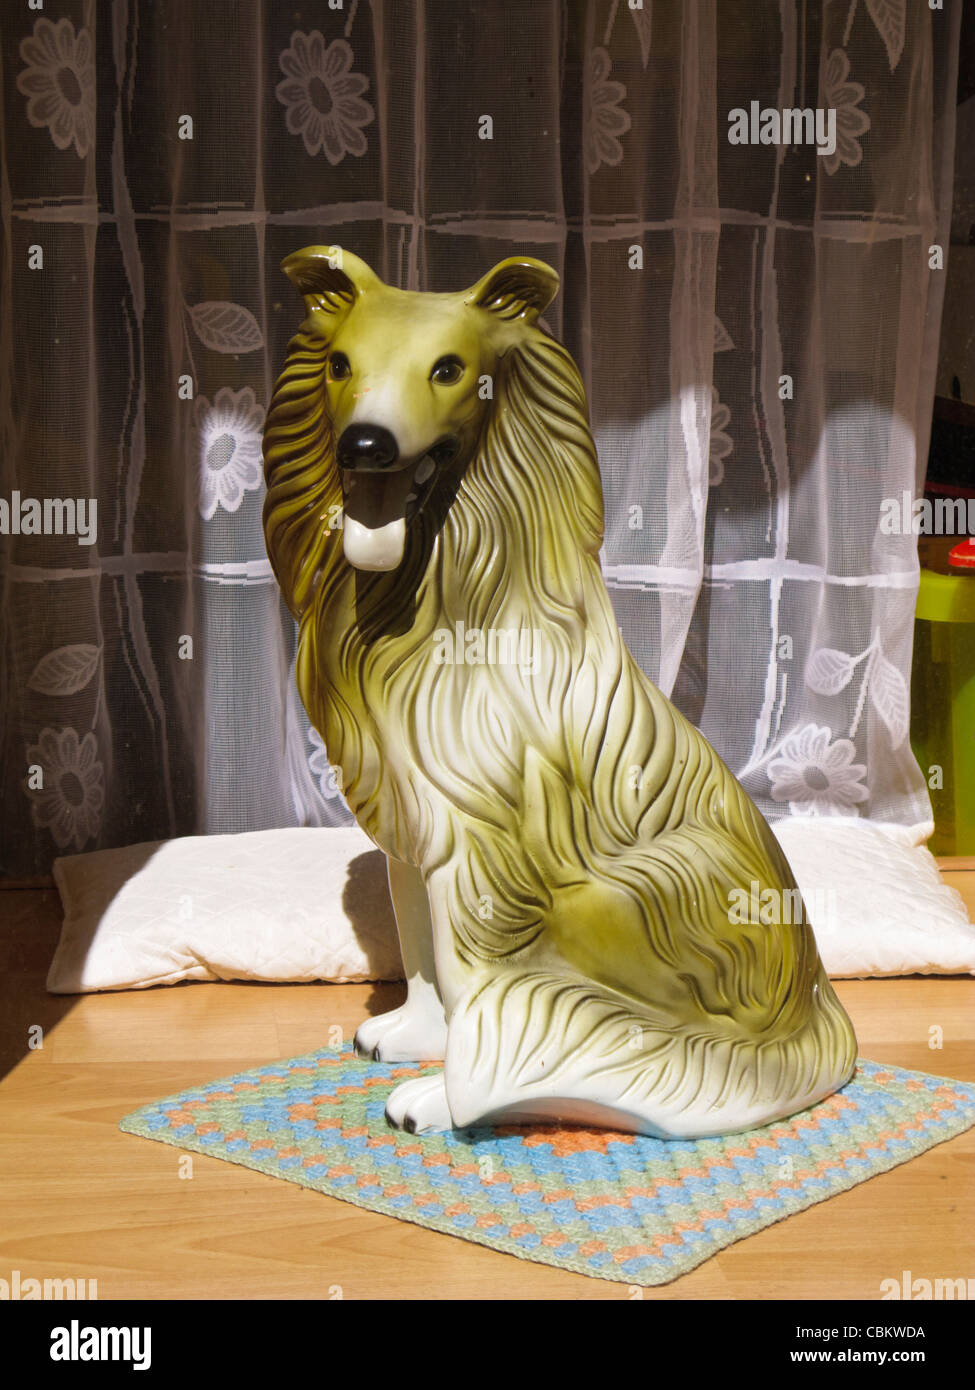 Kitsch retro pottery dog statue in a window - Stock Image